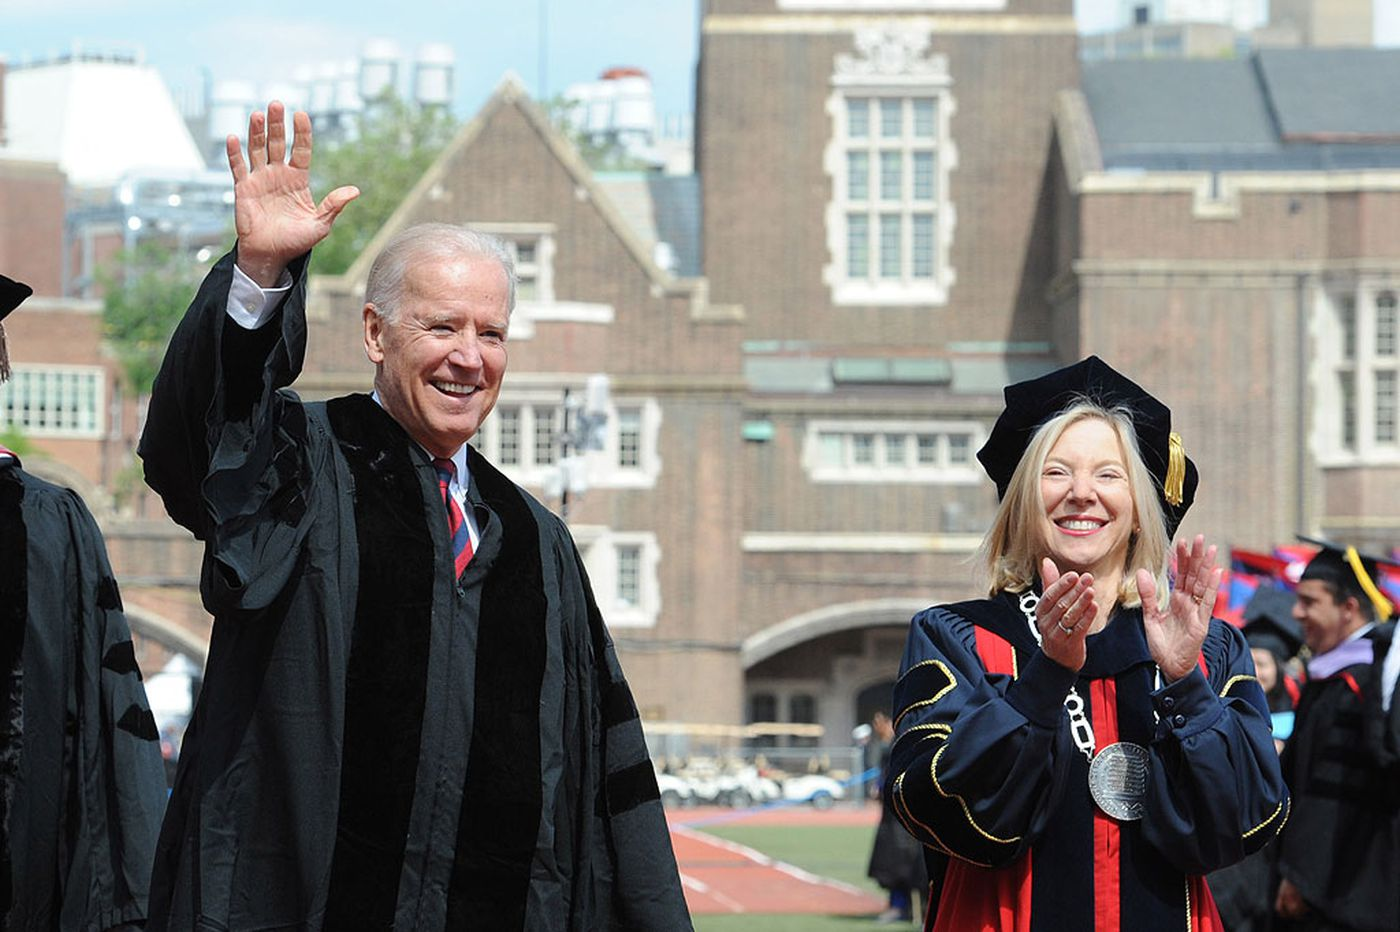 Penn has significant ties to Joe Biden. What might that mean?